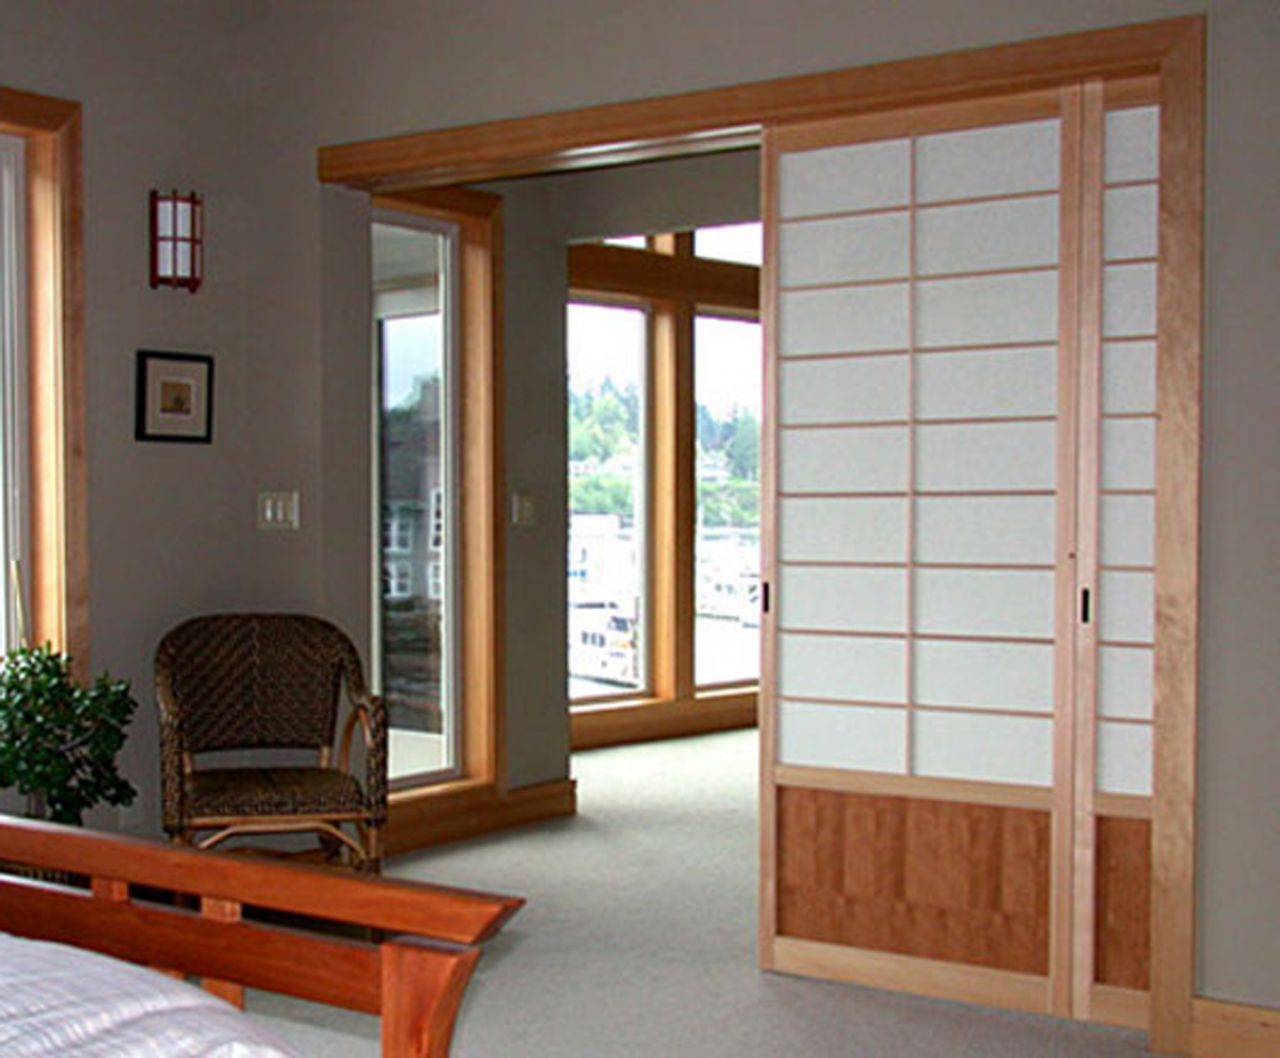 Image result for japanese sliding doors & Image result for japanese sliding doors | sliding doors ... pezcame.com